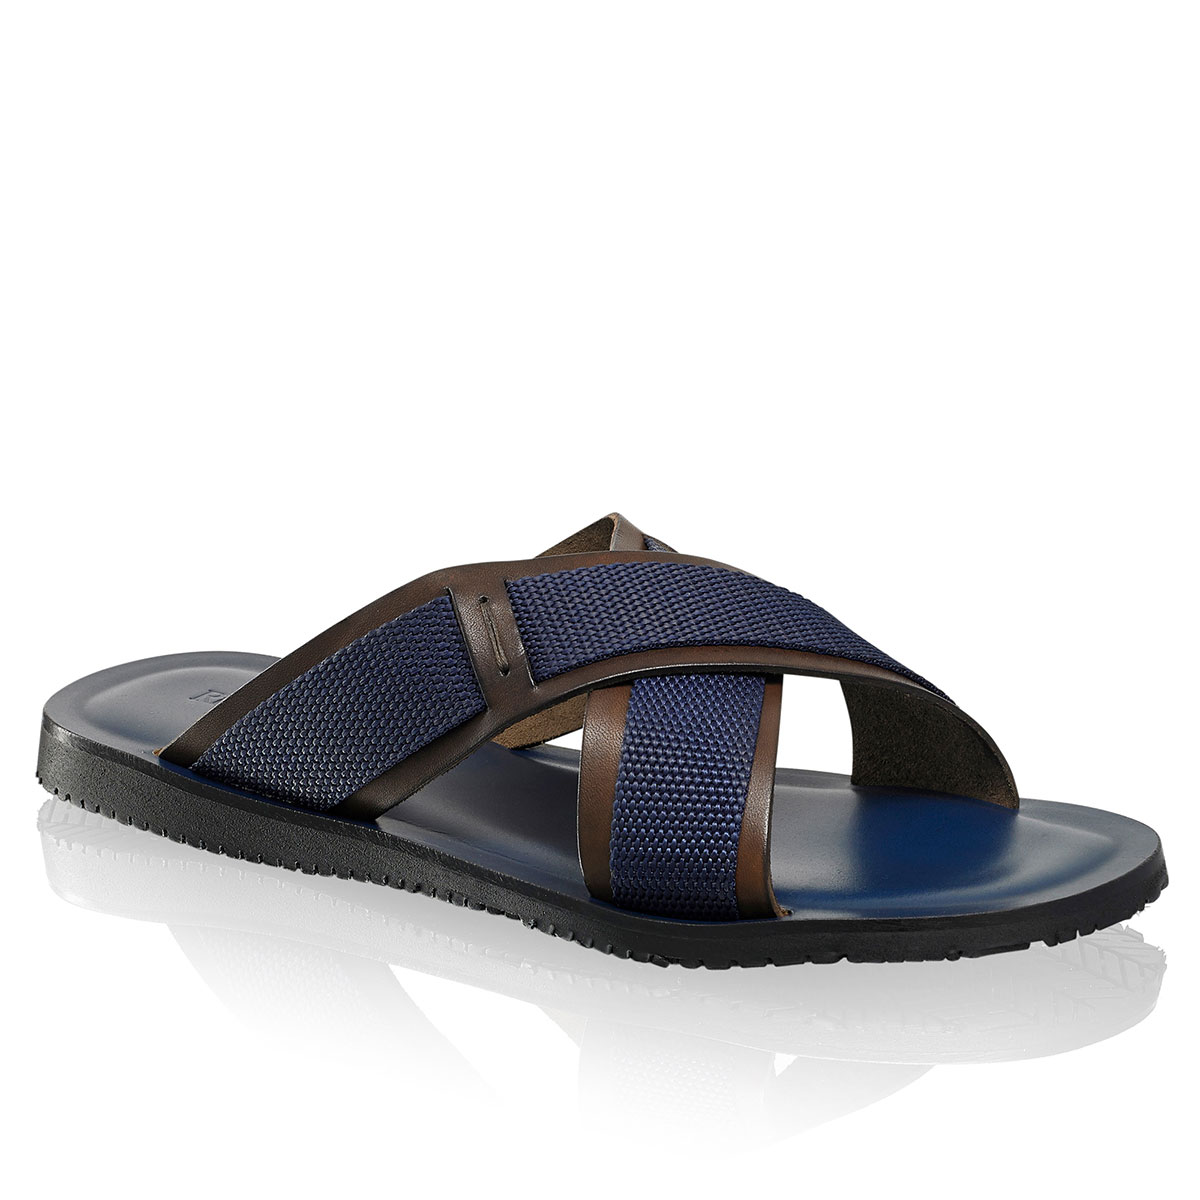 Russell and Bromley FAB CROSS Crossover Slider